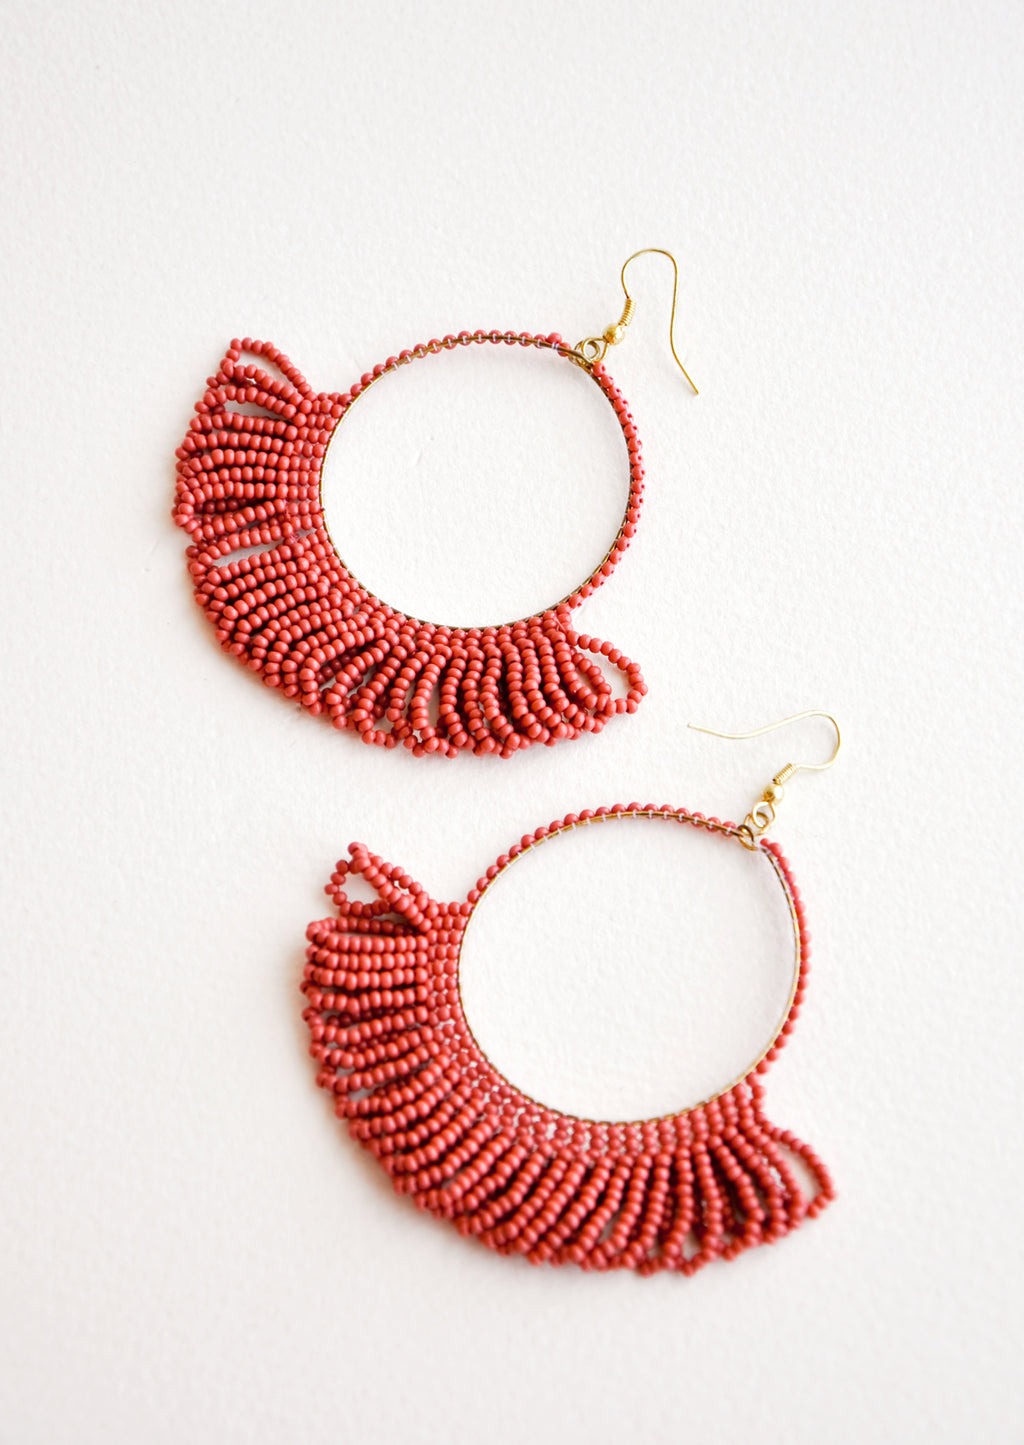 Brick [$24.99]: Dangling hoop earrings featuring dark red beads and accented with hanging beaded, looped fringe.